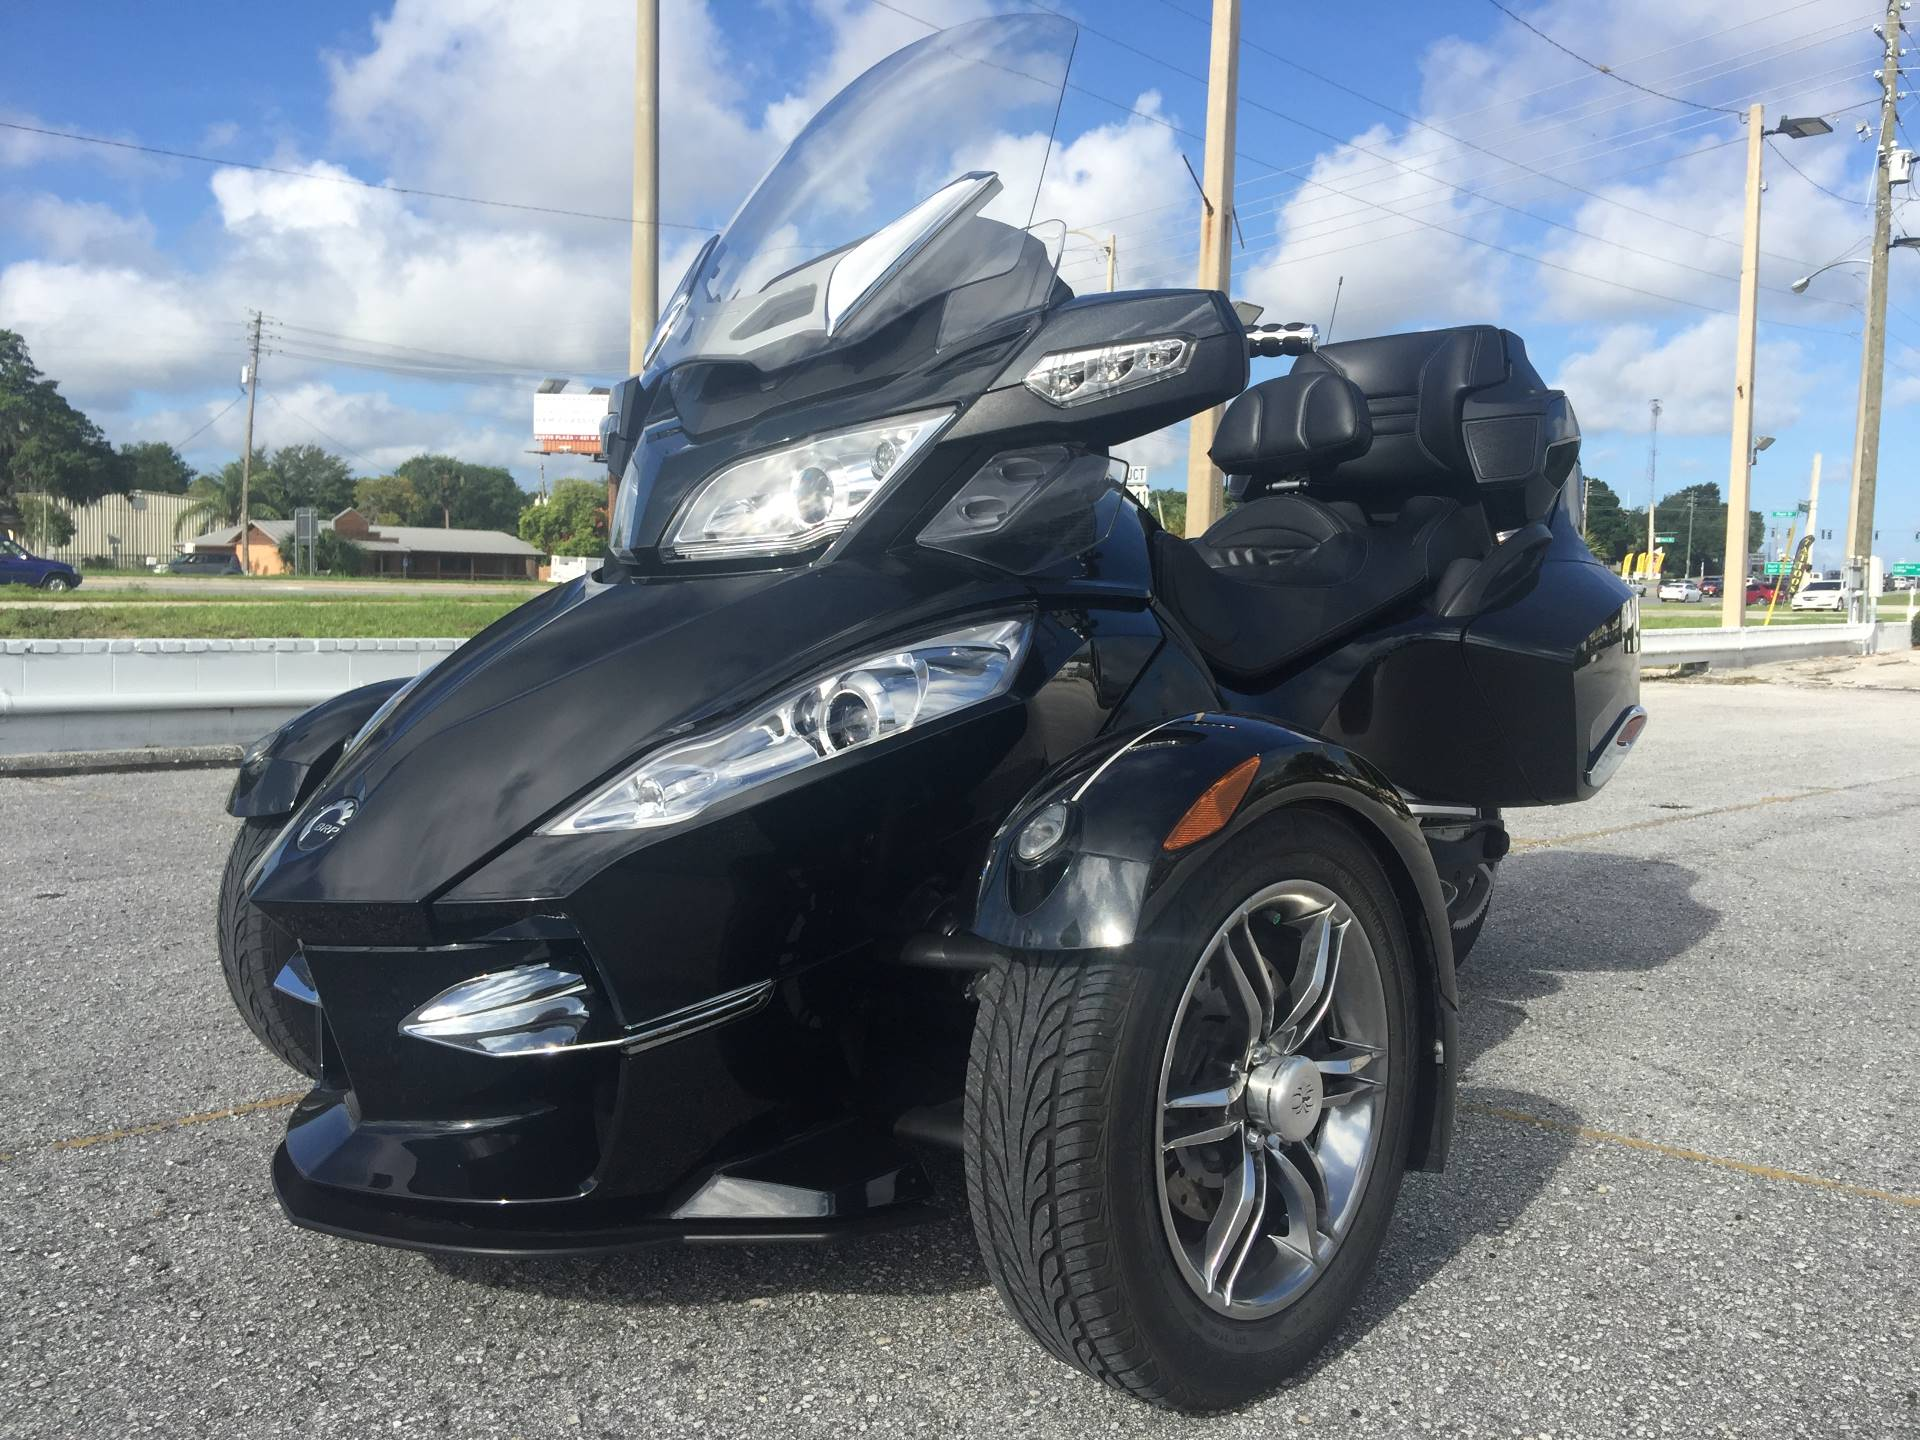 2010 Can-Am Spyder® RT-S SM5 Premiere Edition in Eustis, Florida